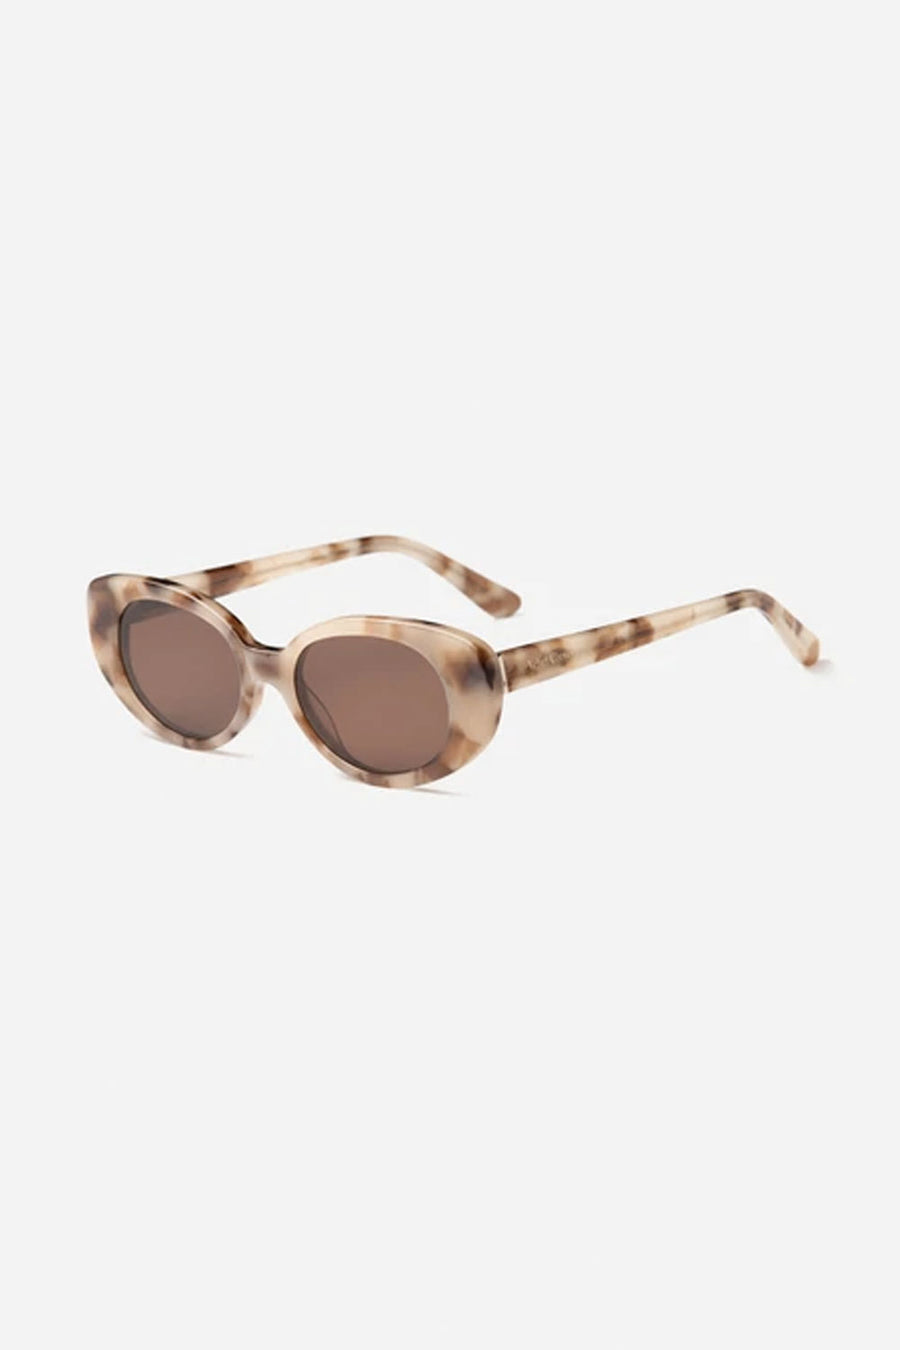 A La Plage | Caramel Tort | VELVET CANYON NZ | Eyewear NZ | Black Box Boutique Auckland | Womens Fashion NZ